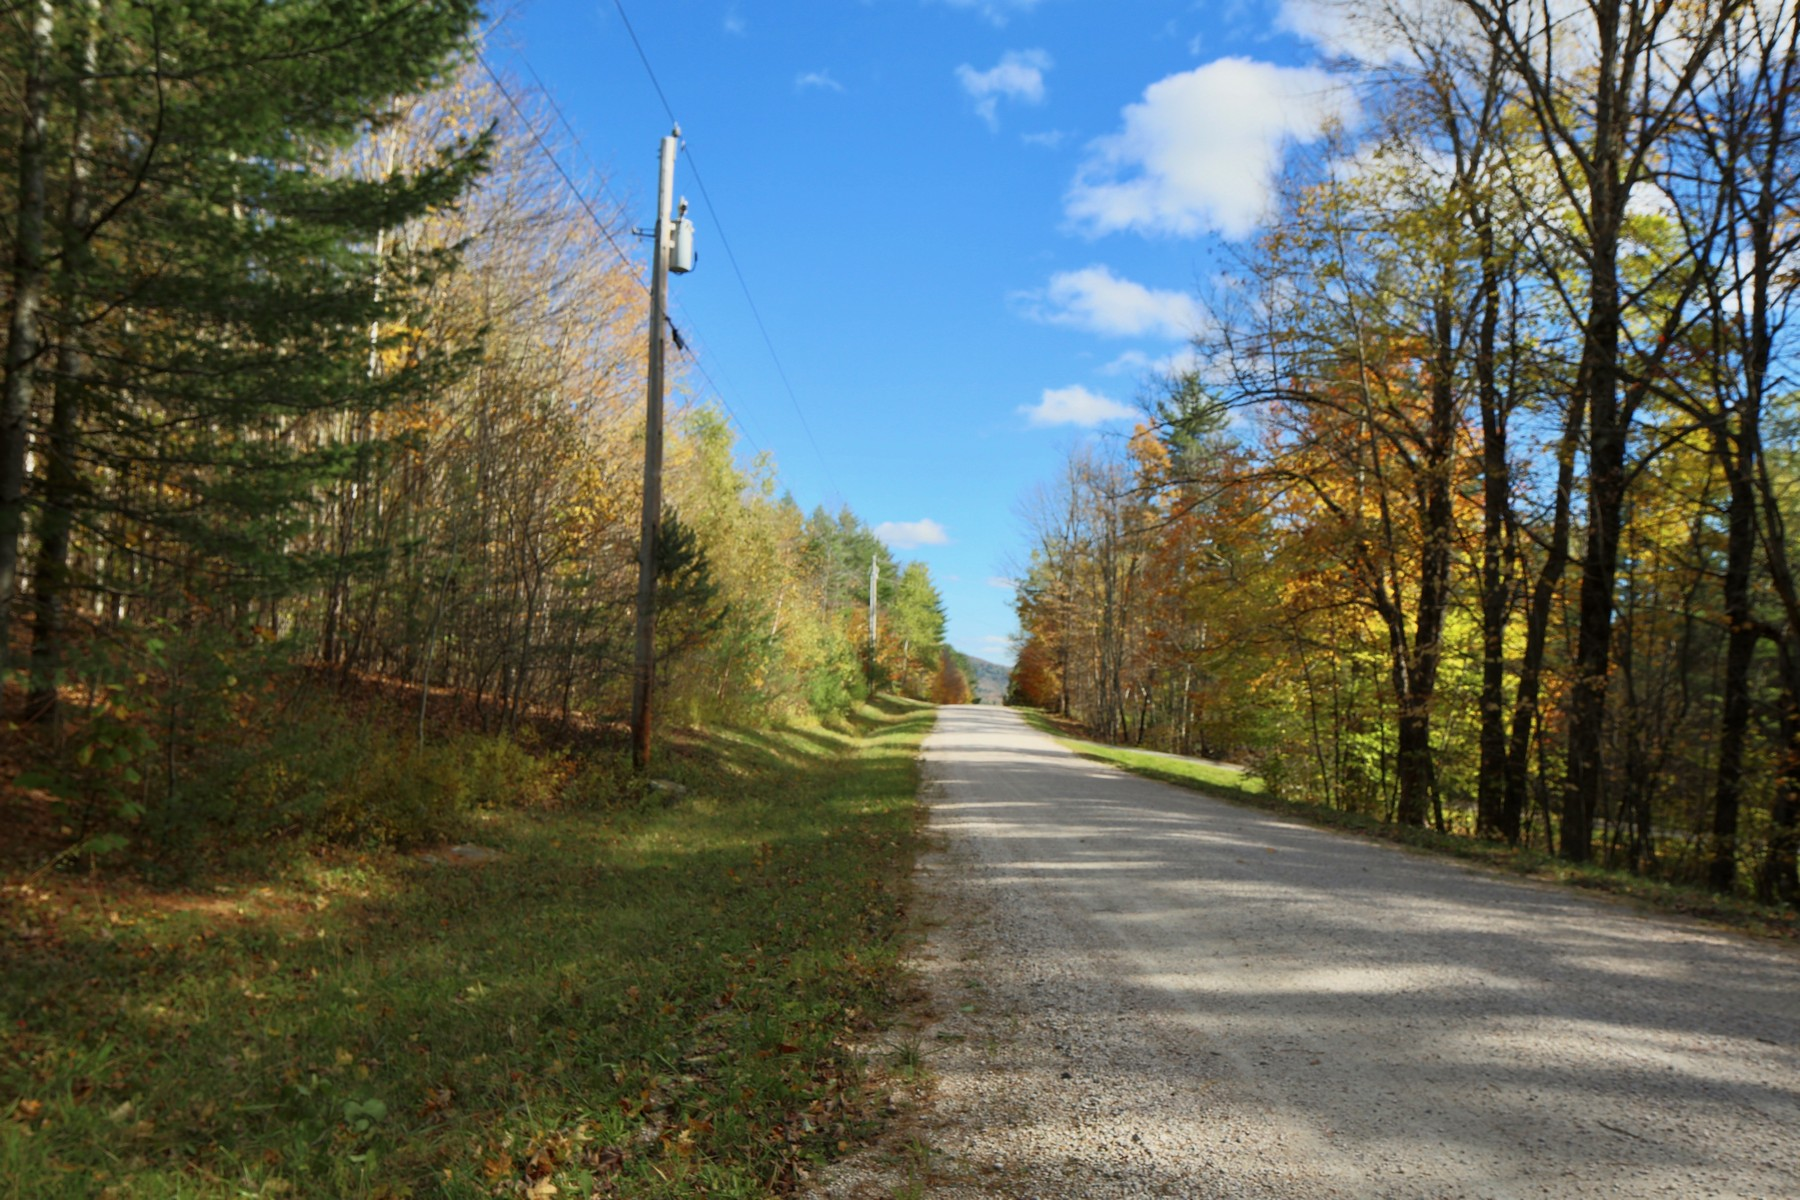 Land for Active at Great Location for Four-Season Activities Dix Hill Rd Lot 23 Plymouth, Vermont 05056 United States